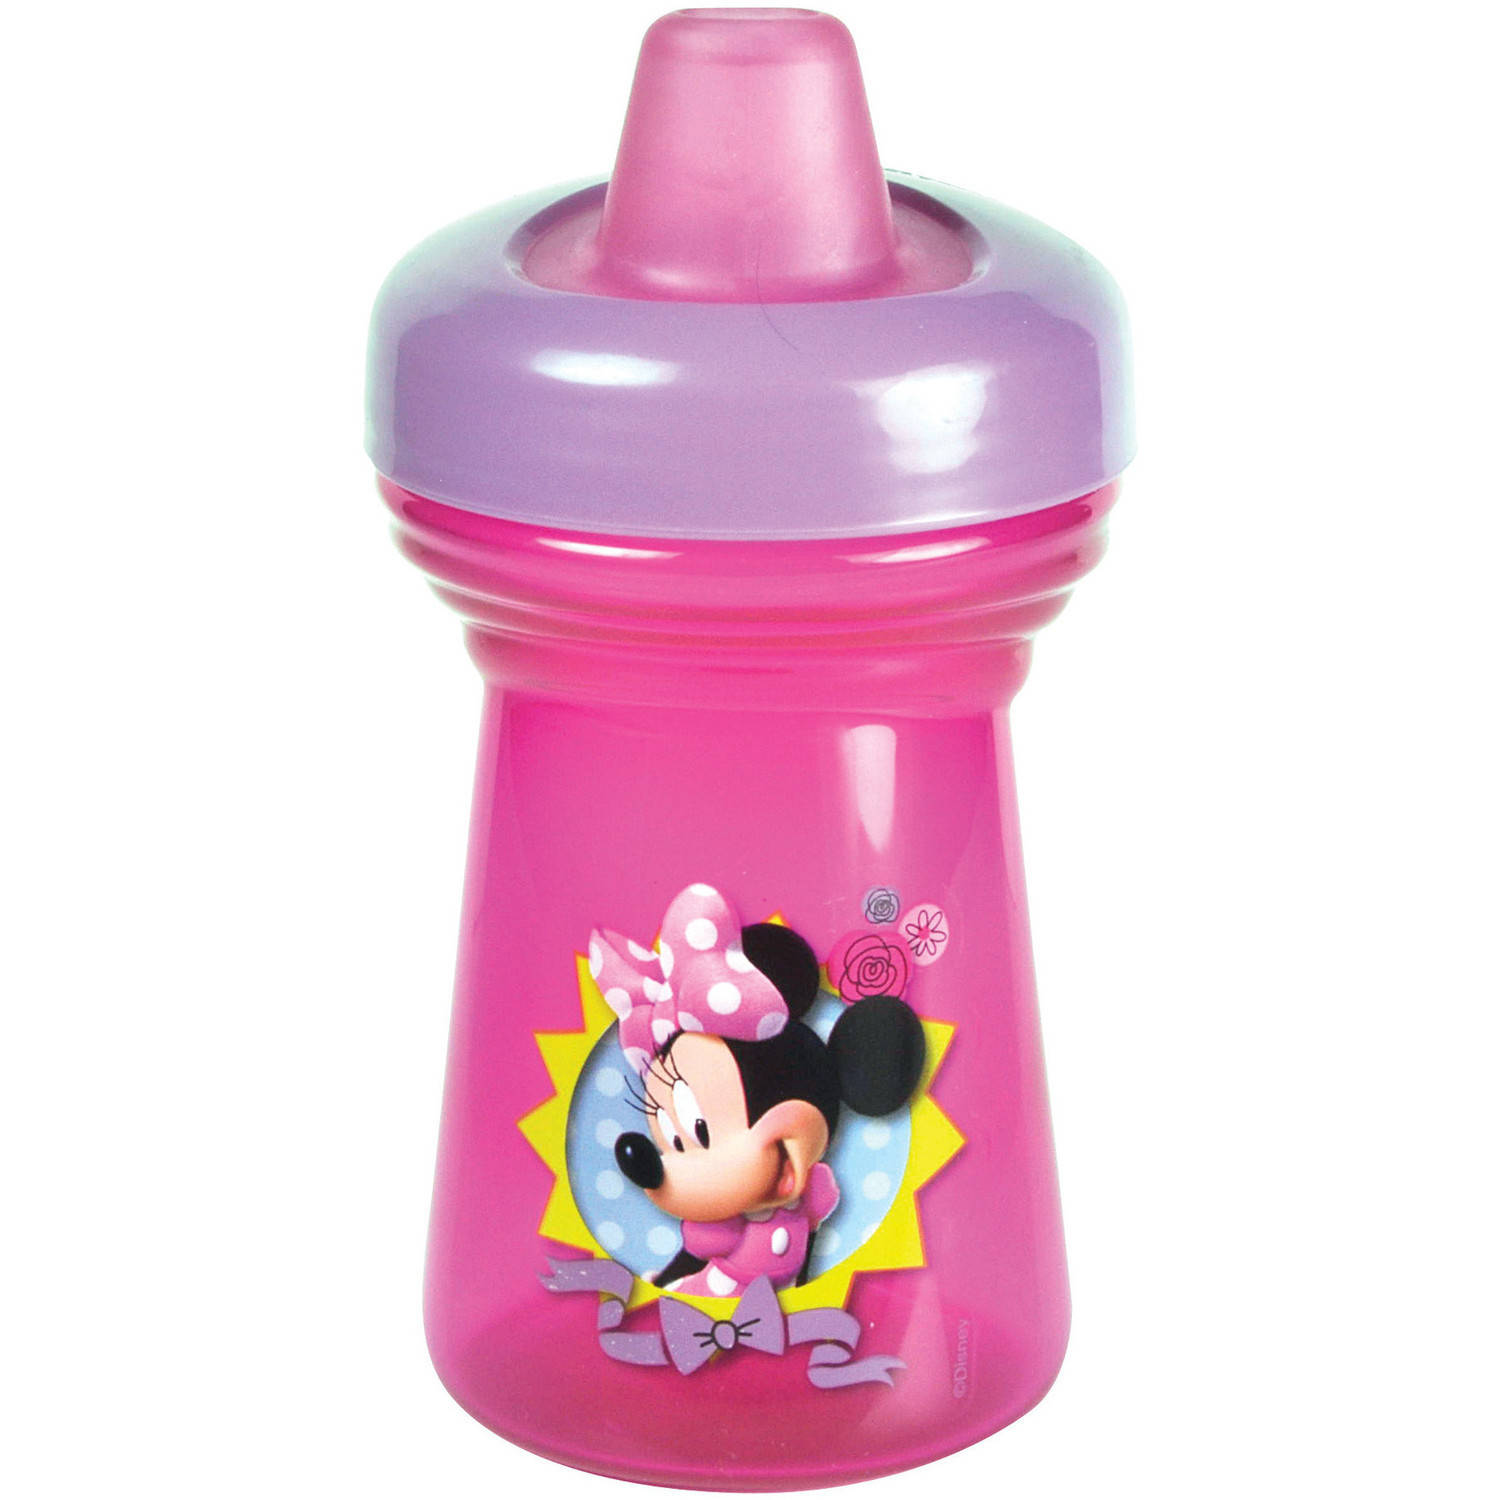 The First Years Disney Baby Minnie Mouse Soft Spout Cup, BPA-Free